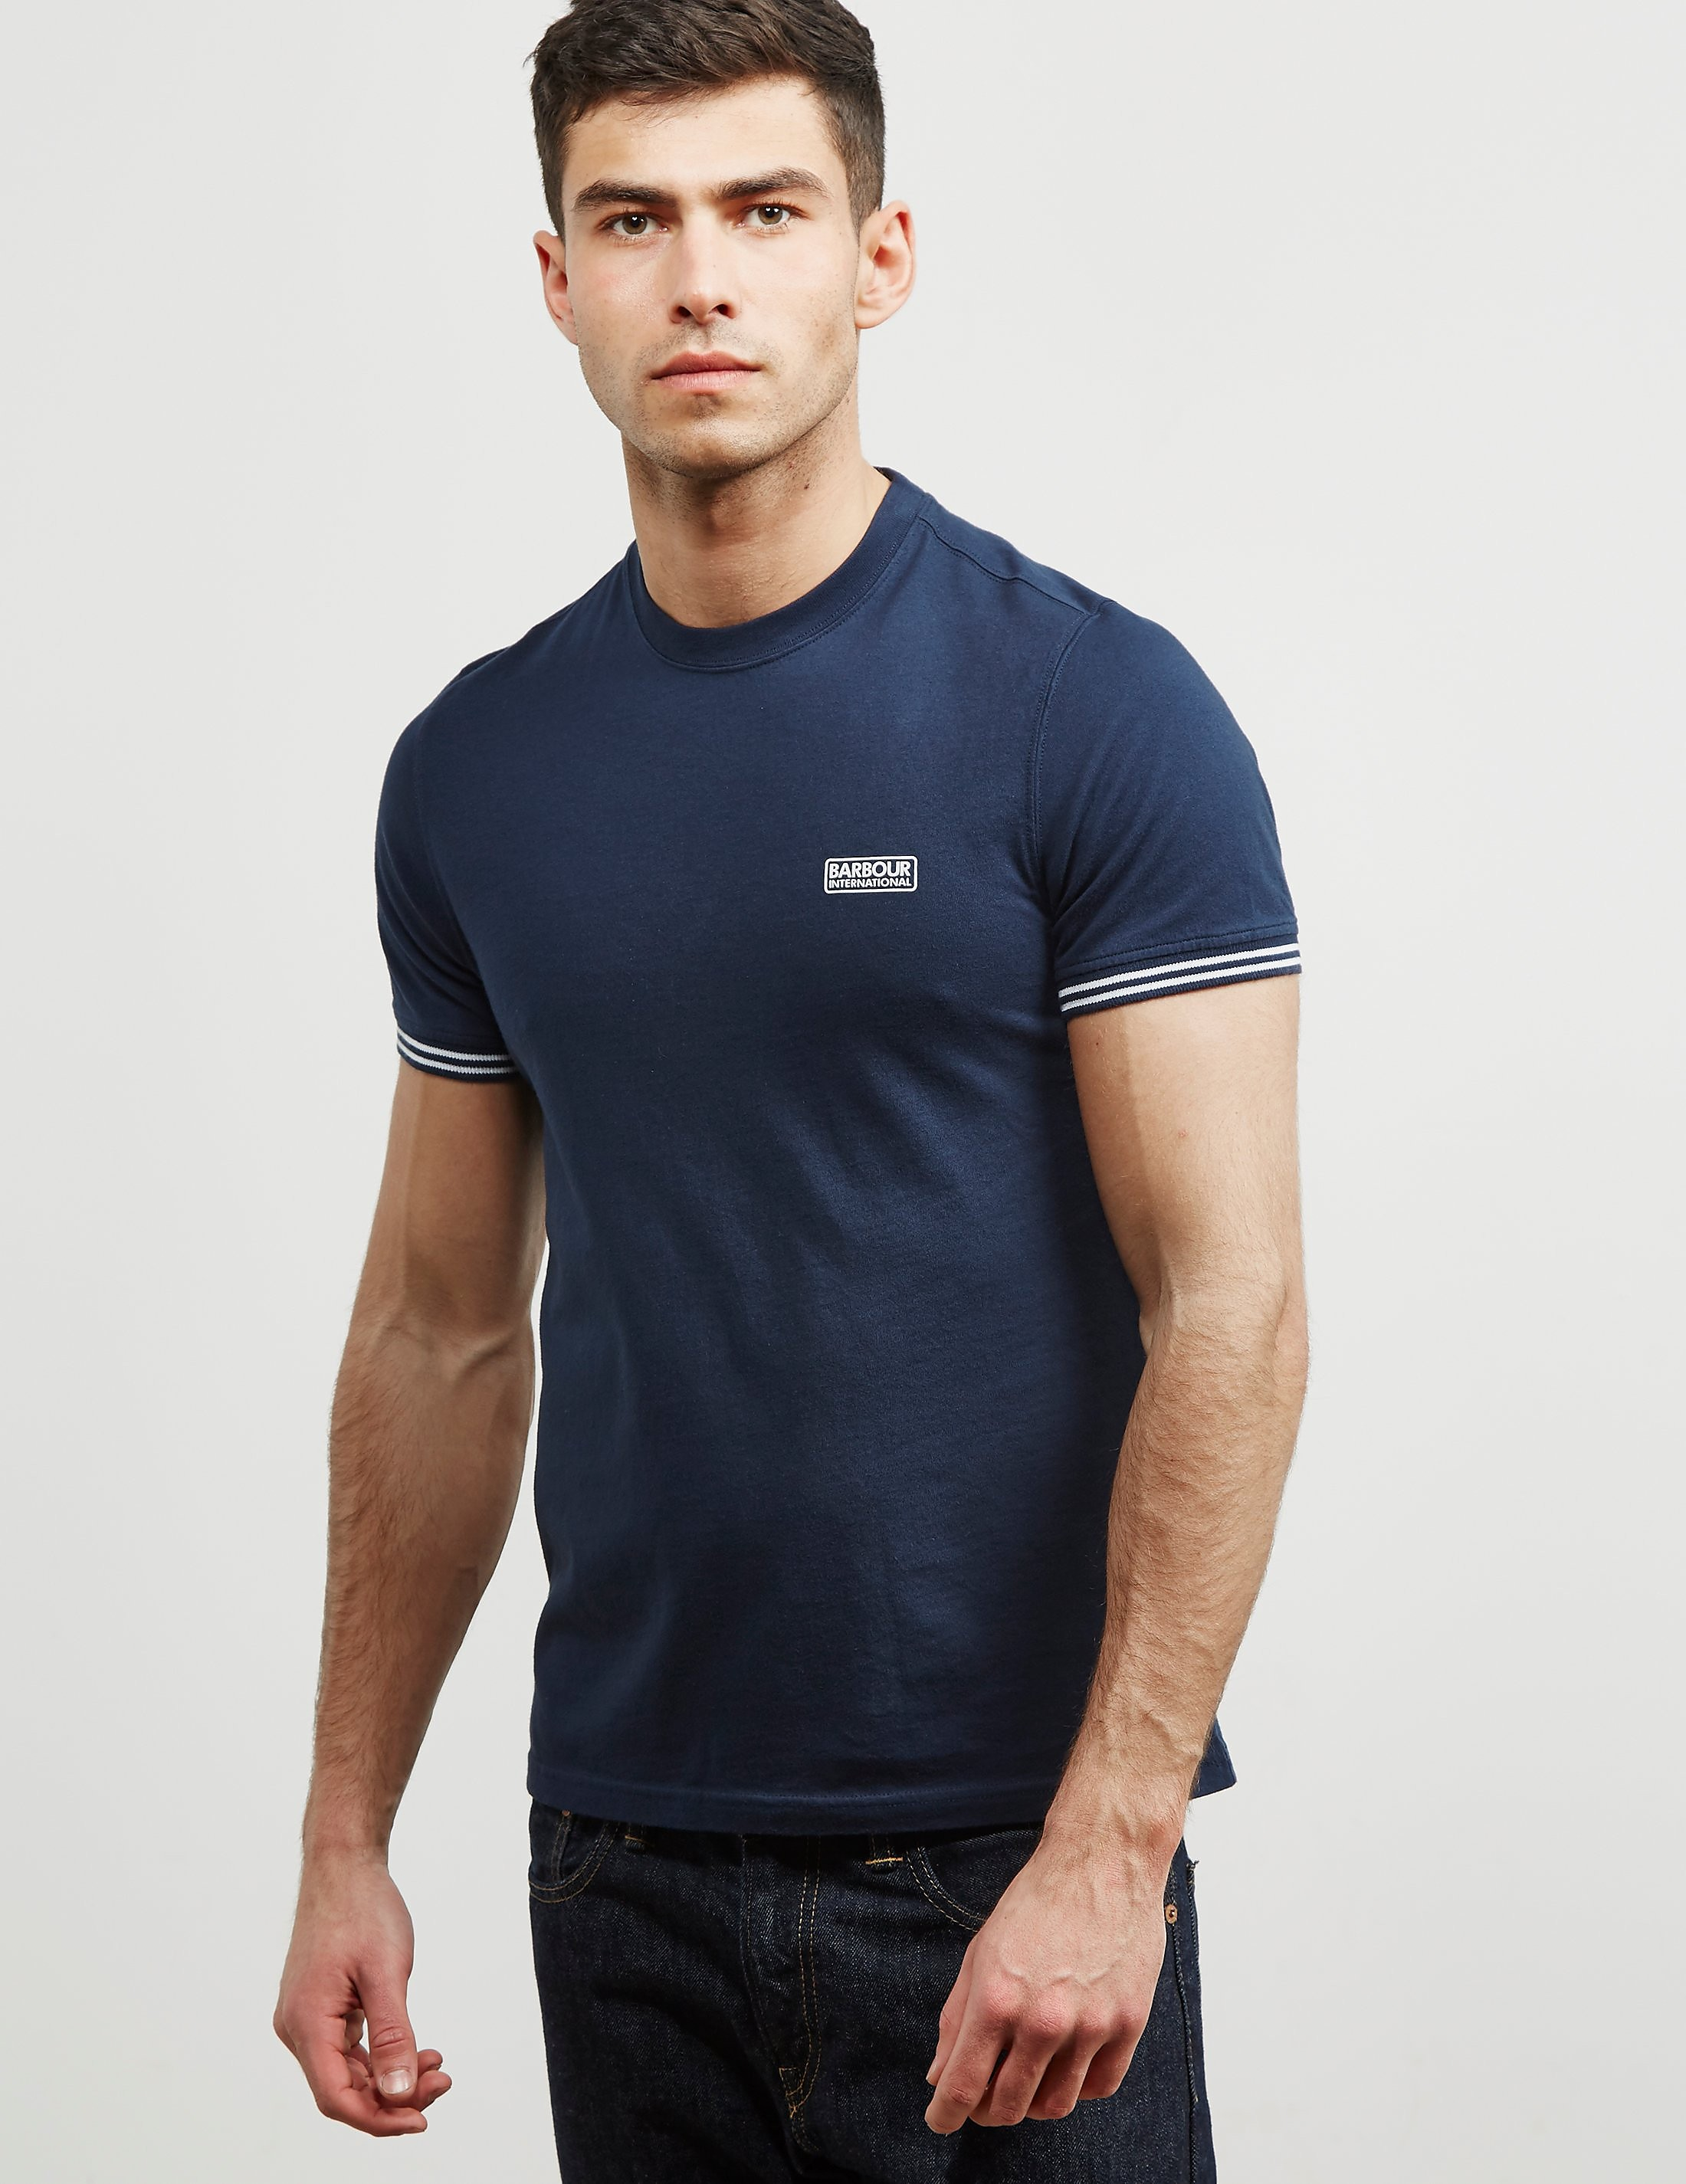 Barbour International Tipped Short Sleeve T-Shirt